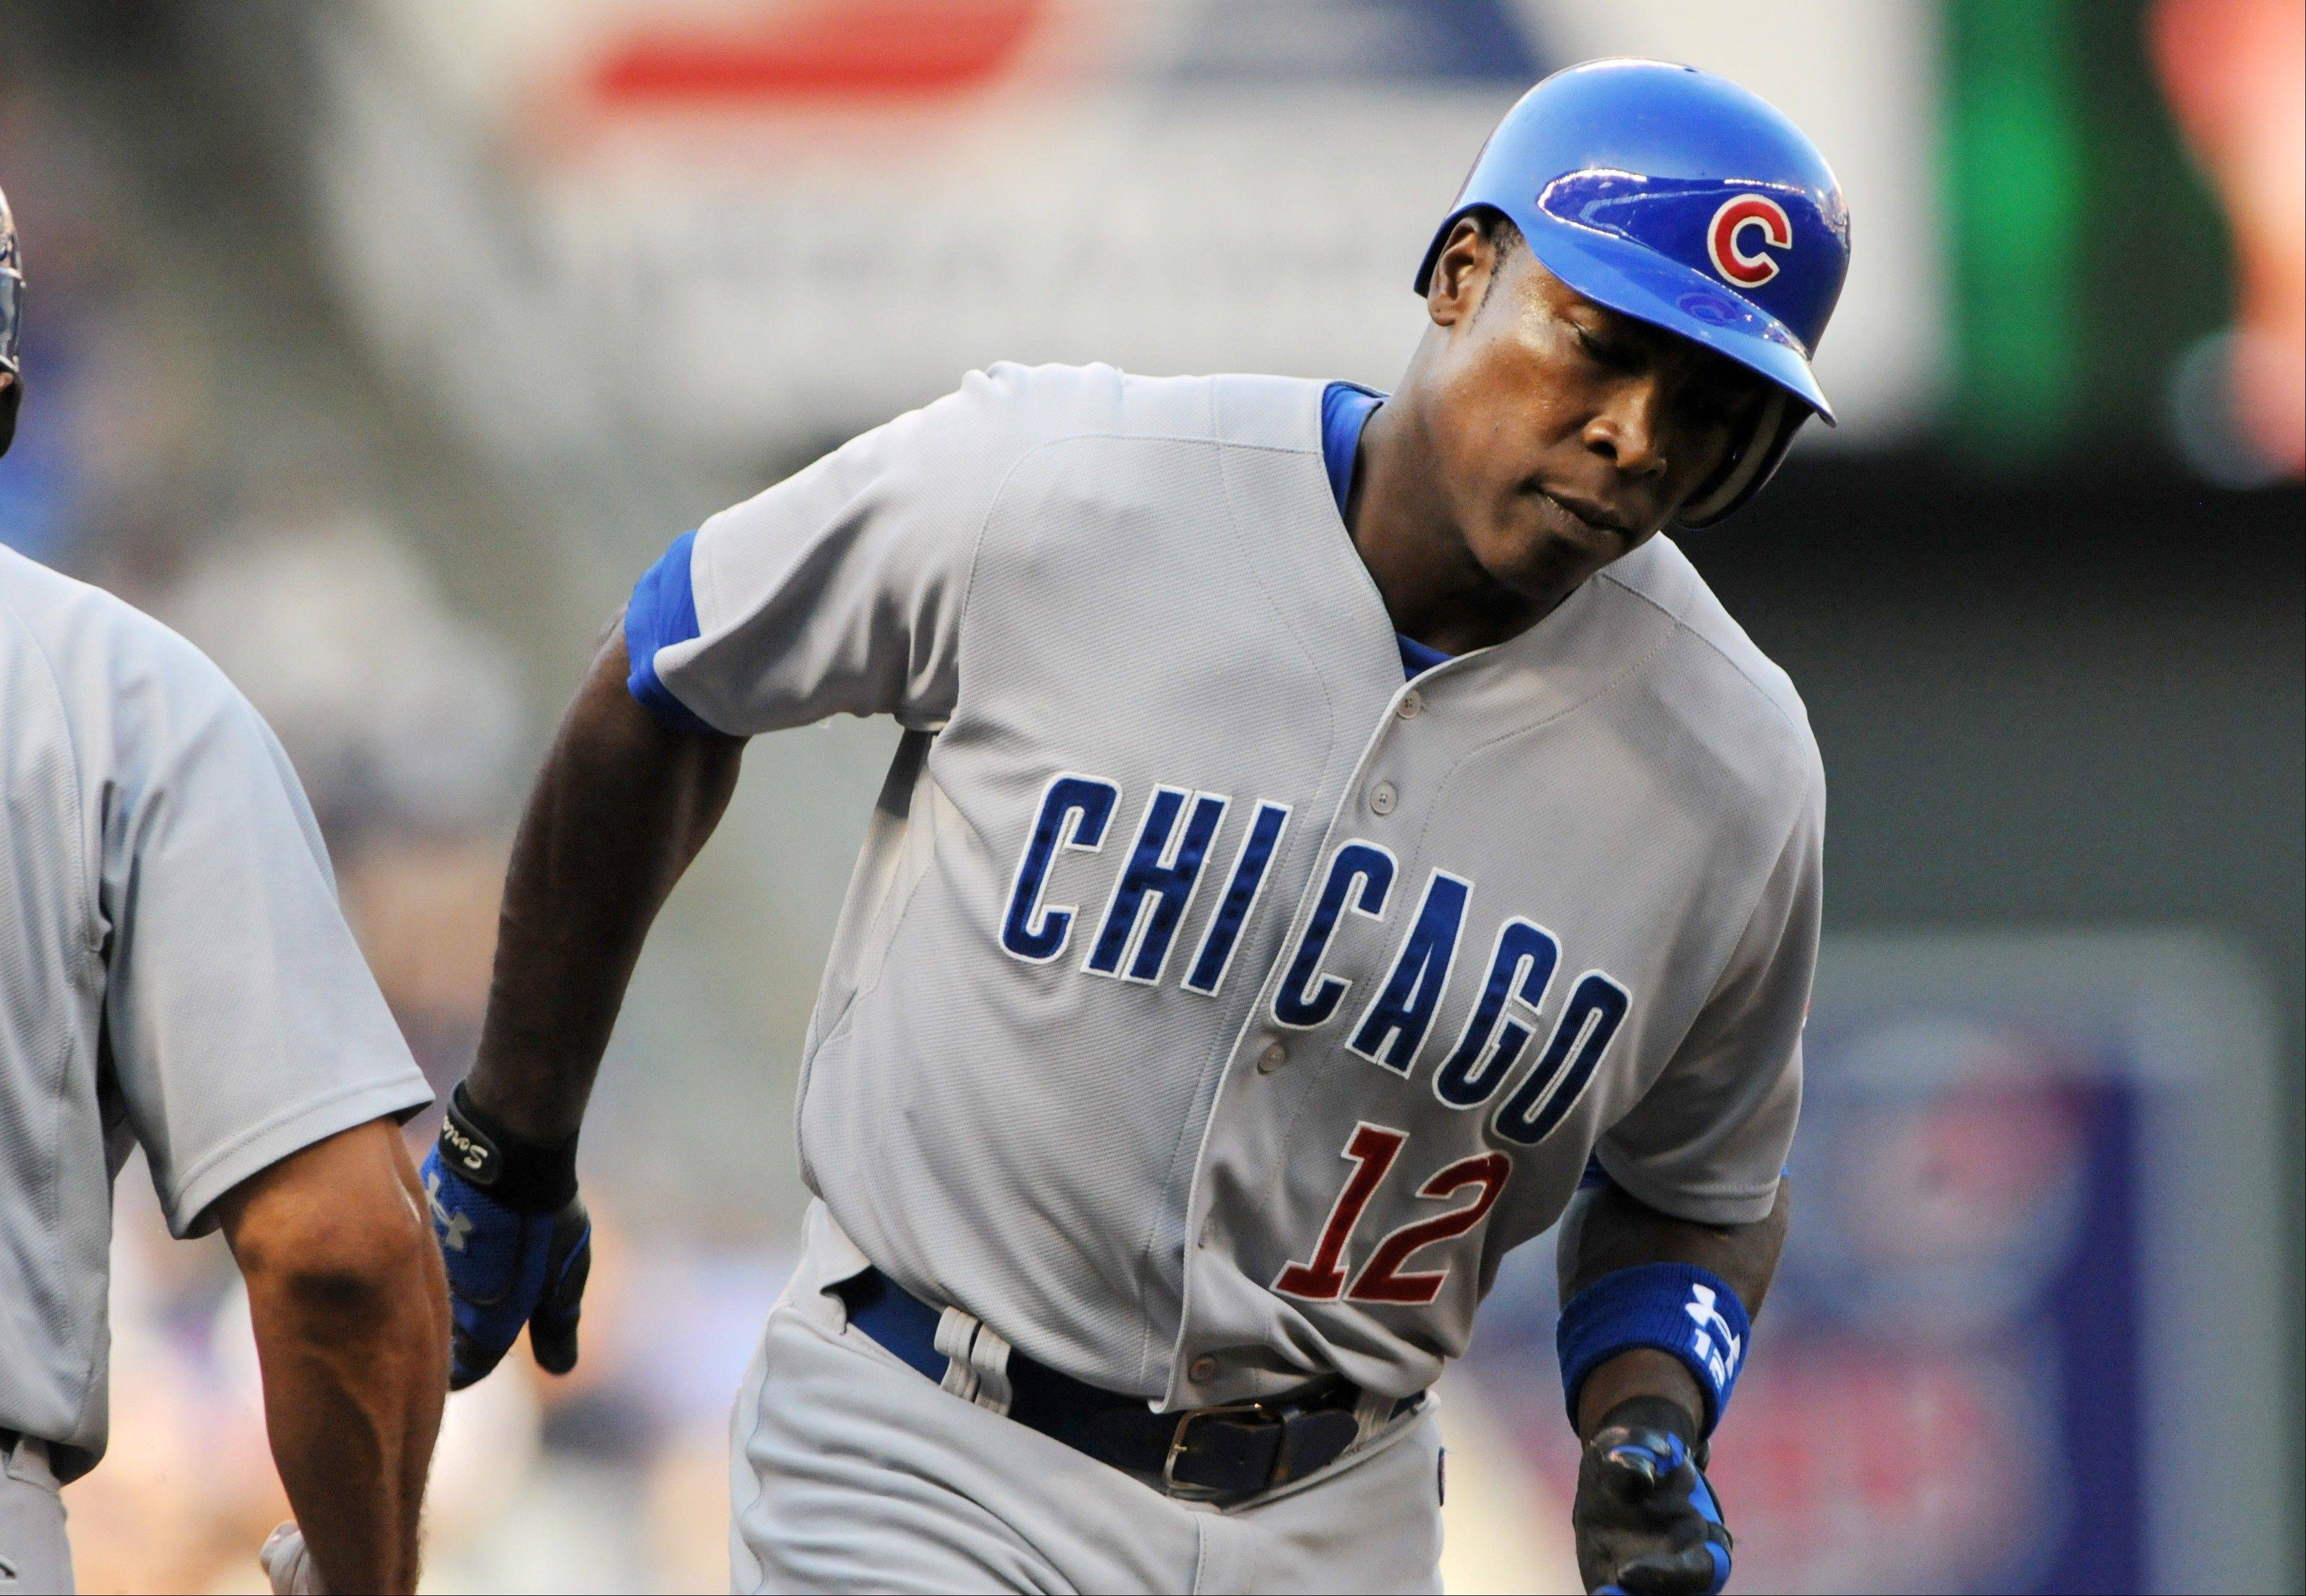 The Cubs' Alfonso Soriano rounds the bases Friday on his solo home run off Minnesota Twins pitcher P.J. Walters during the first inning in Minneapolis.